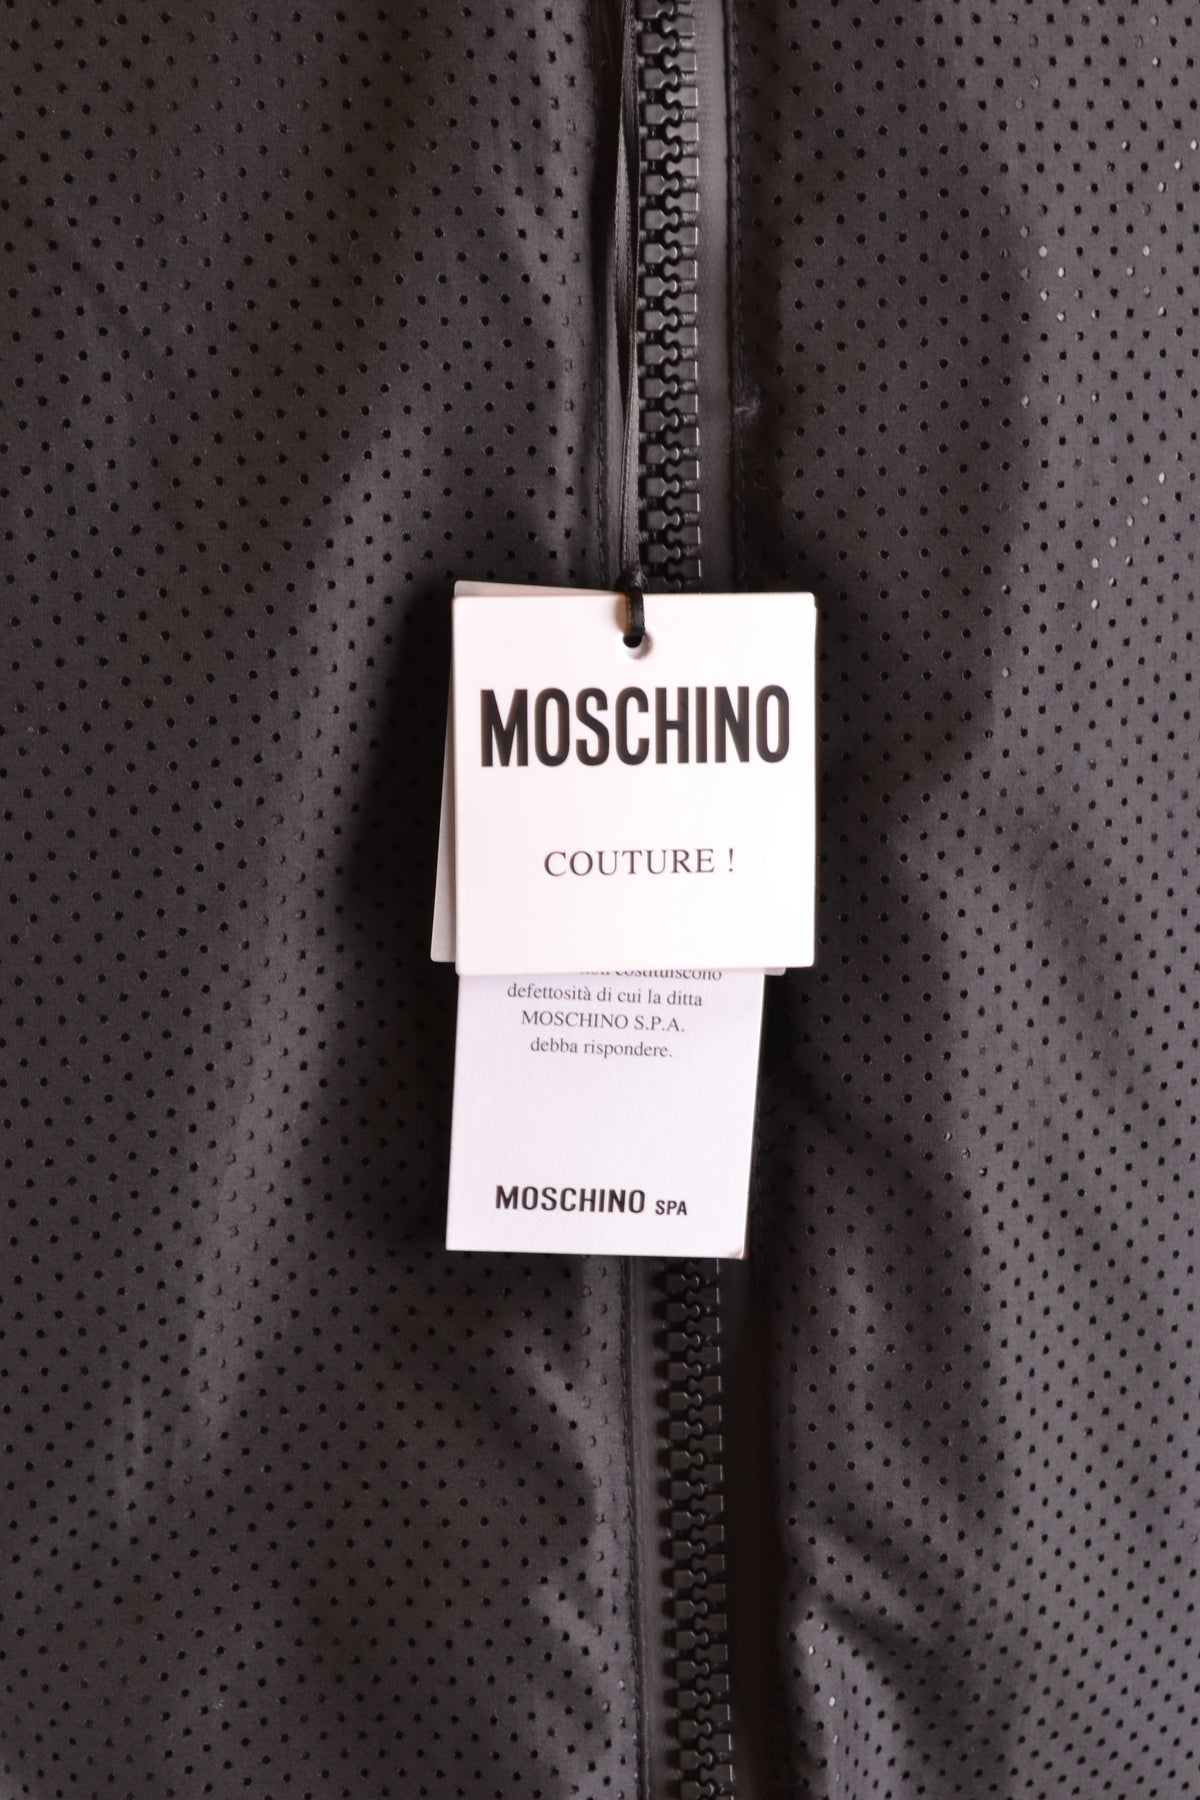 Jacket Moschino--Product Details Terms: New With LabelYear: 2019Main Color: BlackGender: ManMade In: ItalyManufacturer Part Number: Za0604Size: ItSeason: Spring / SummerClothing Type: BlousonComposition: Polyester 100%-Keyomi-Sook